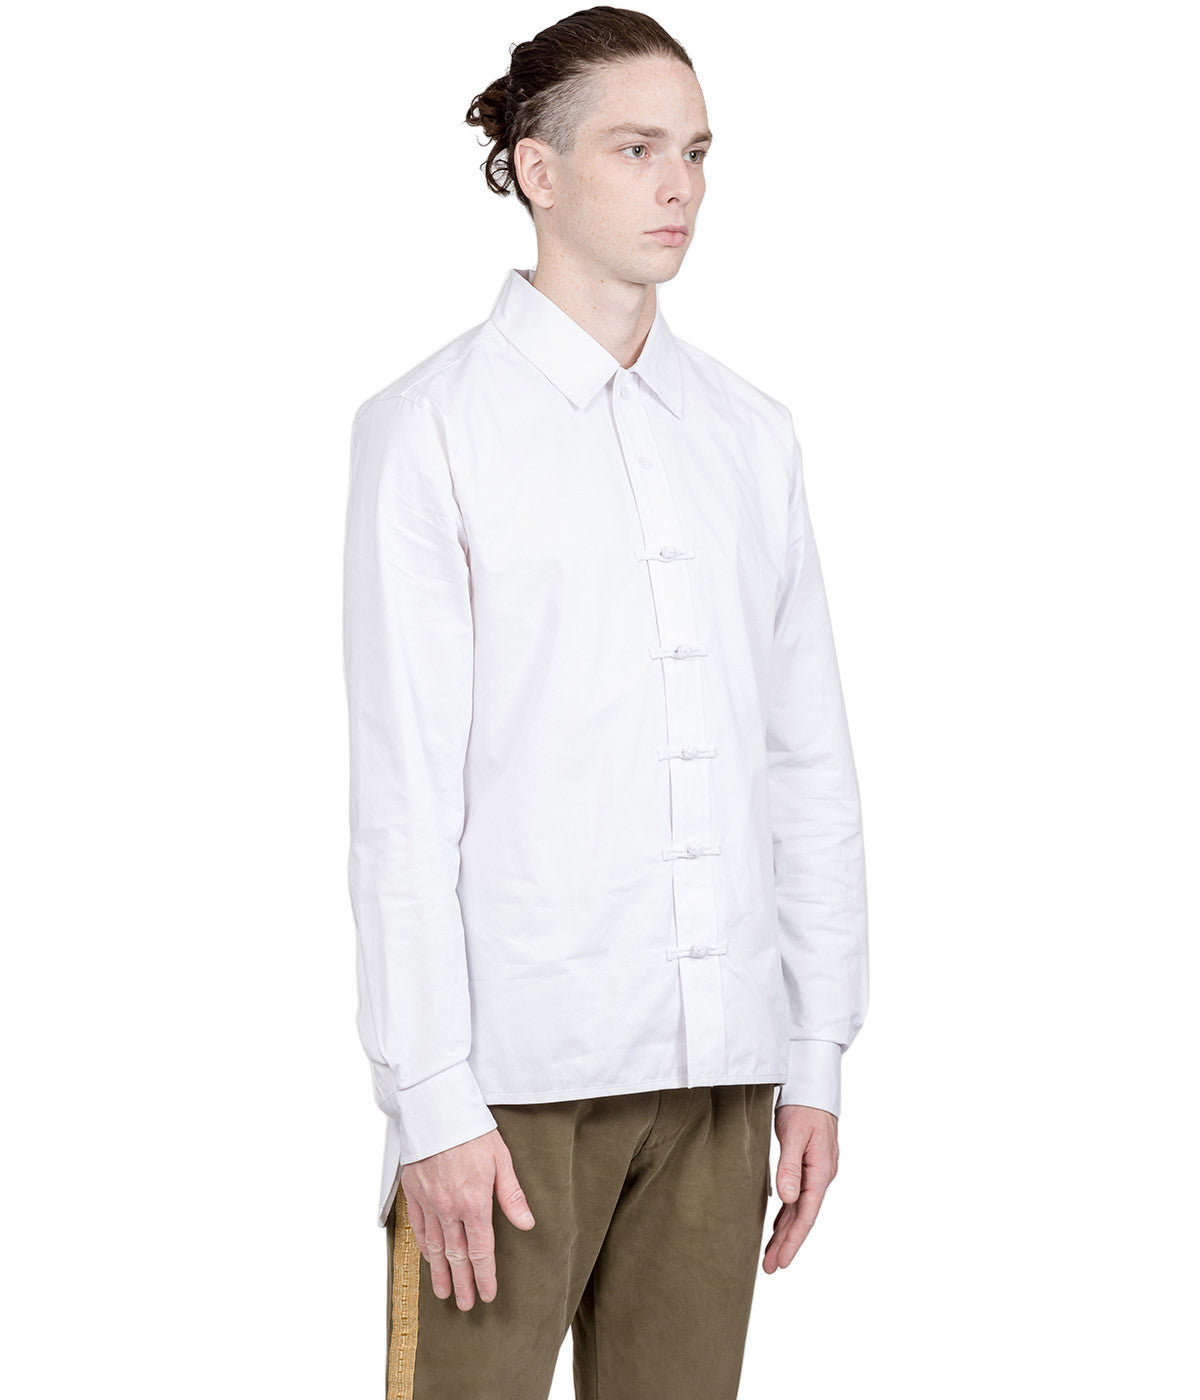 White Chinese Button-Up Shirt